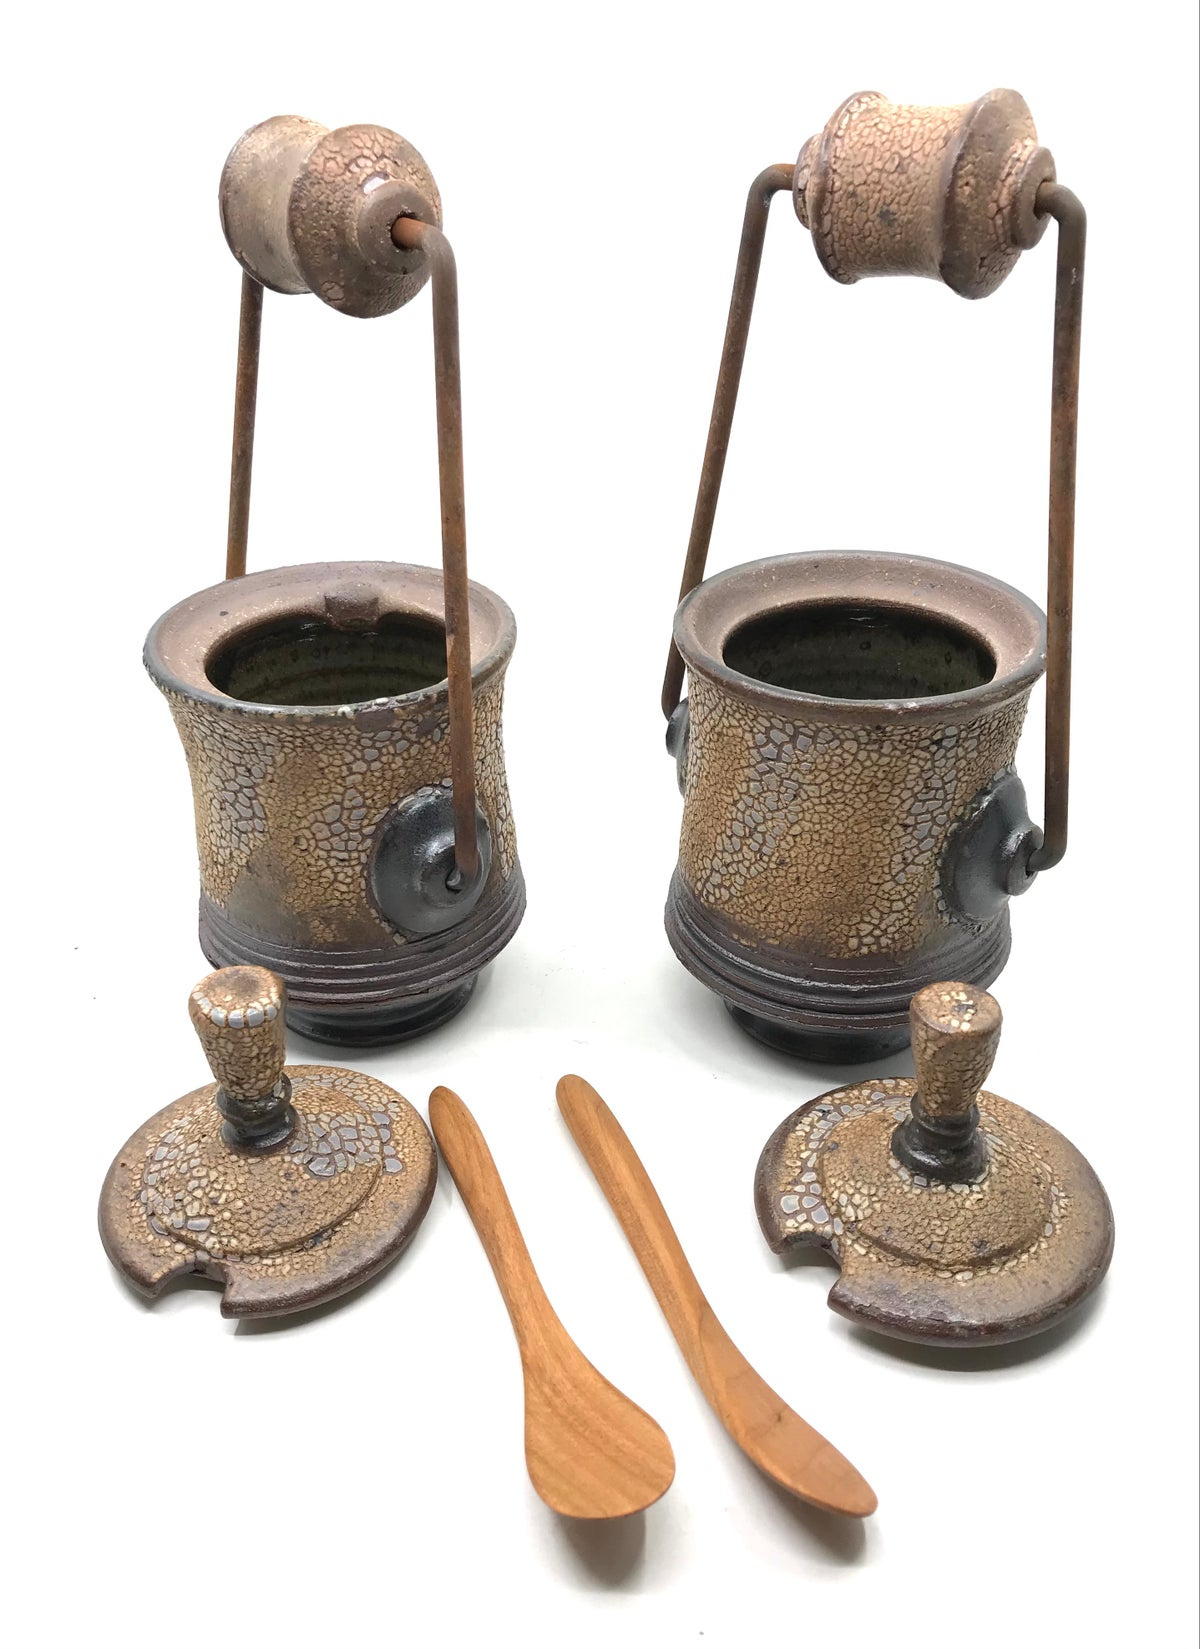 Lidded Container Set by Anthony Borchardt